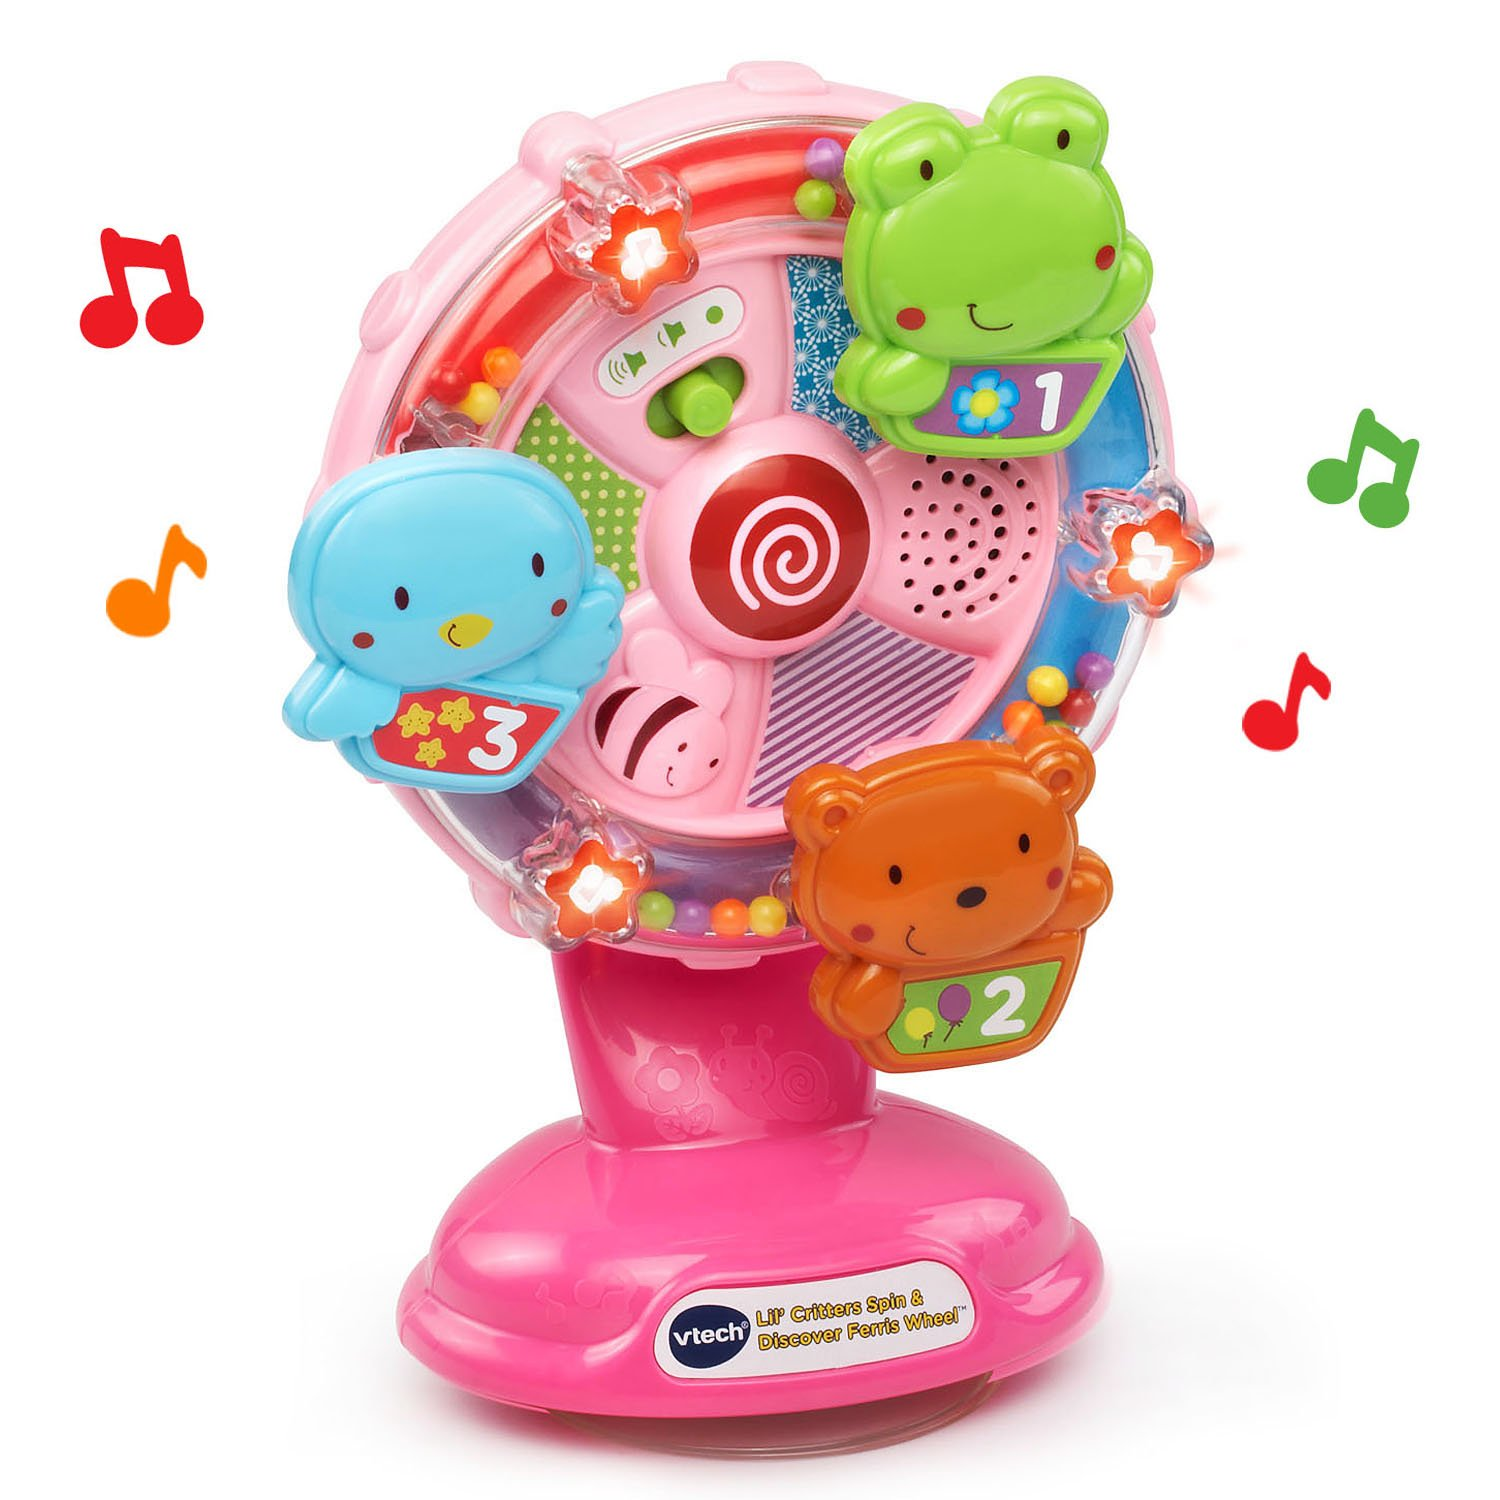 VTech Lil' Critters Spin and Discover Ferris Wheels, Pink (Amazon Exclusive) by VTech (Image #3)